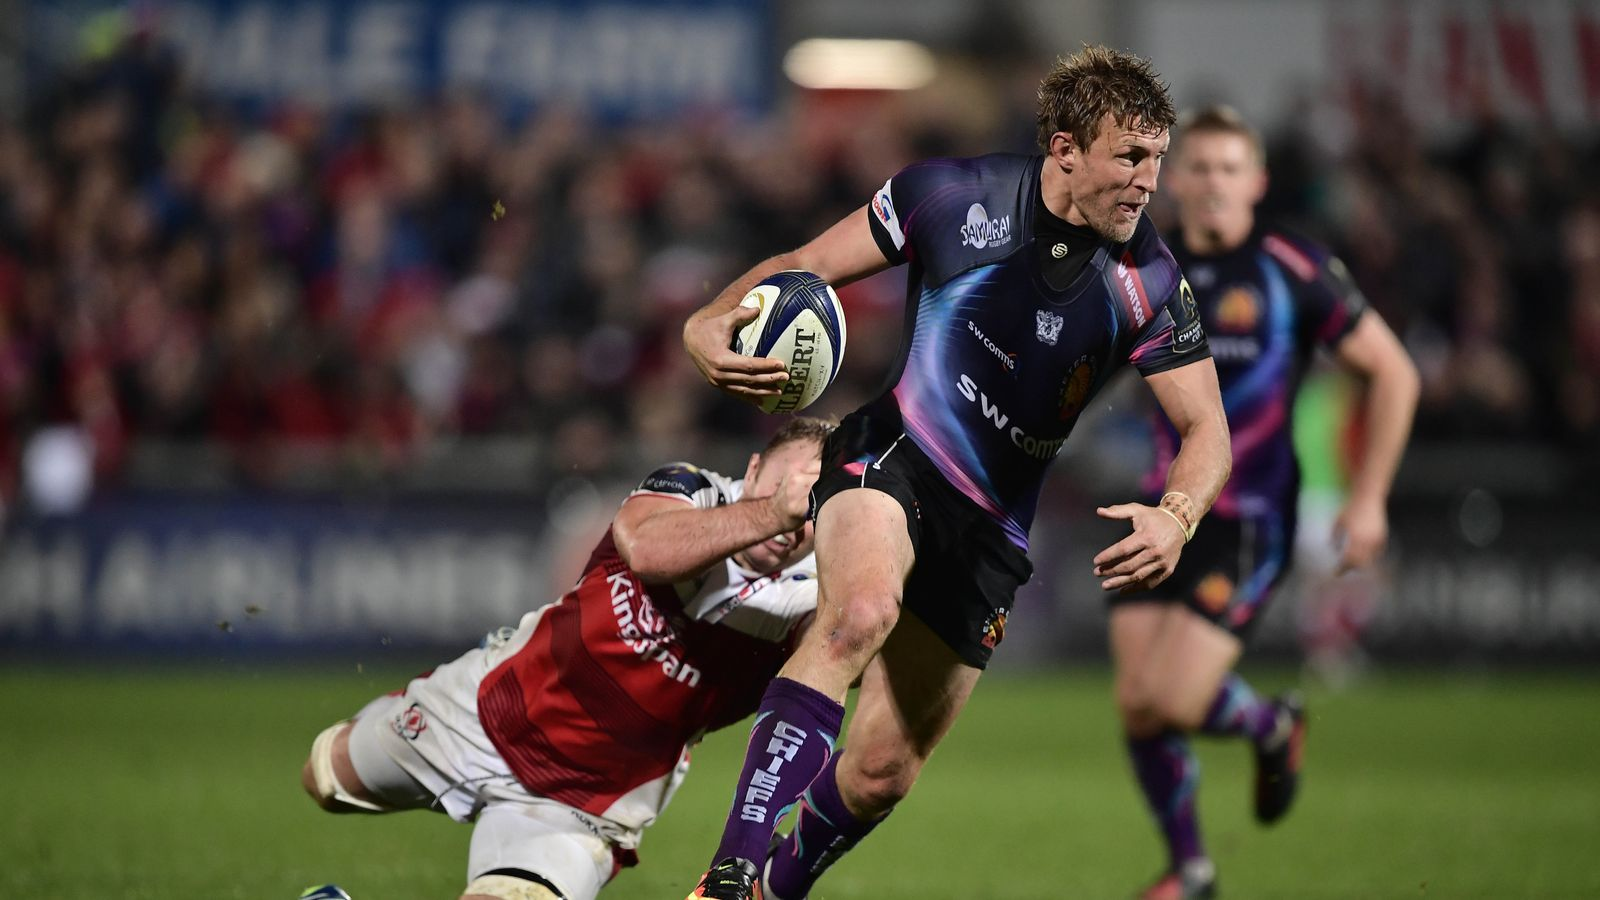 skysports lachie turner exeter rugby union 3879049.